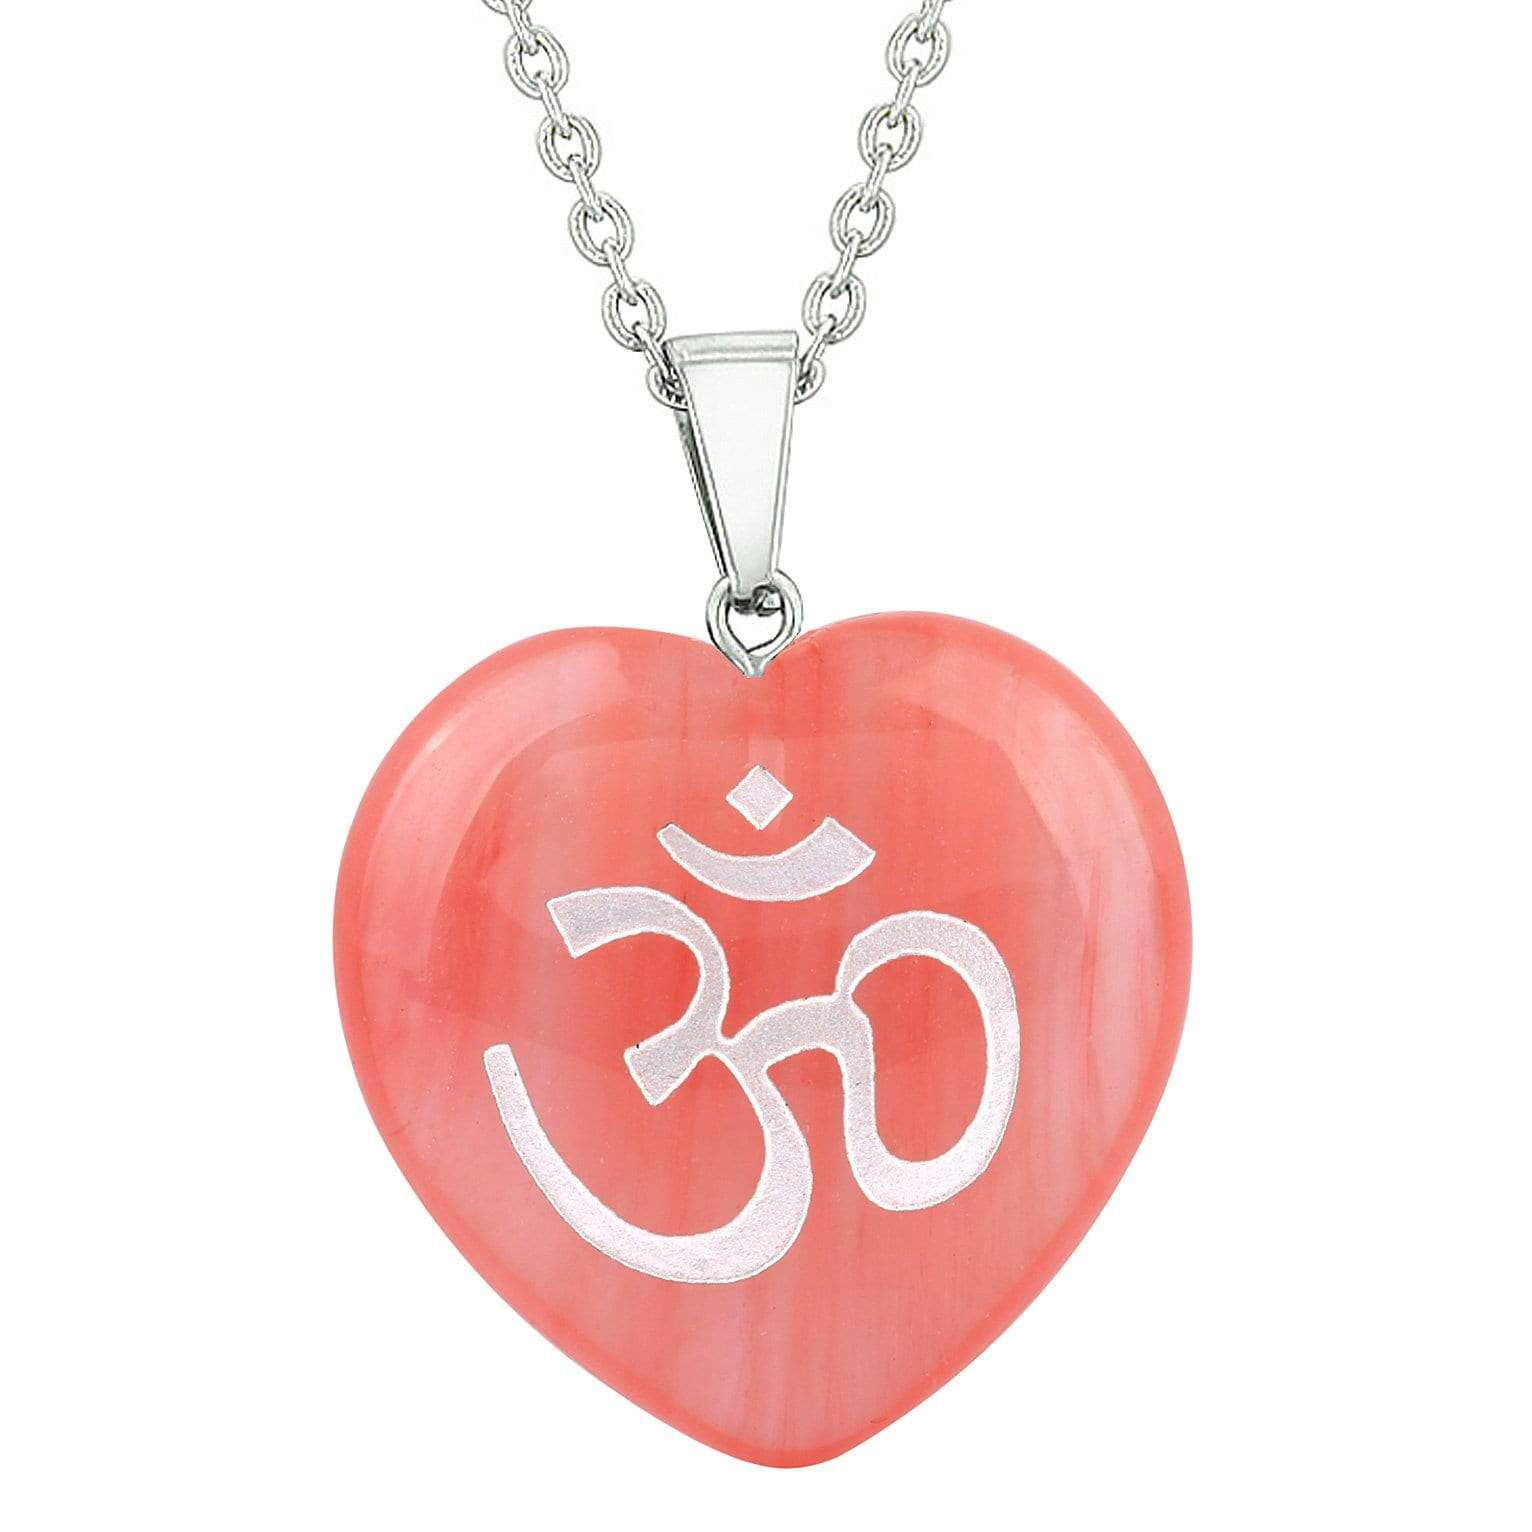 Amulet Ancient OM Egyptian Powers Cherry Simulated Quartz Hematite Puffy Heart Pendant Necklace